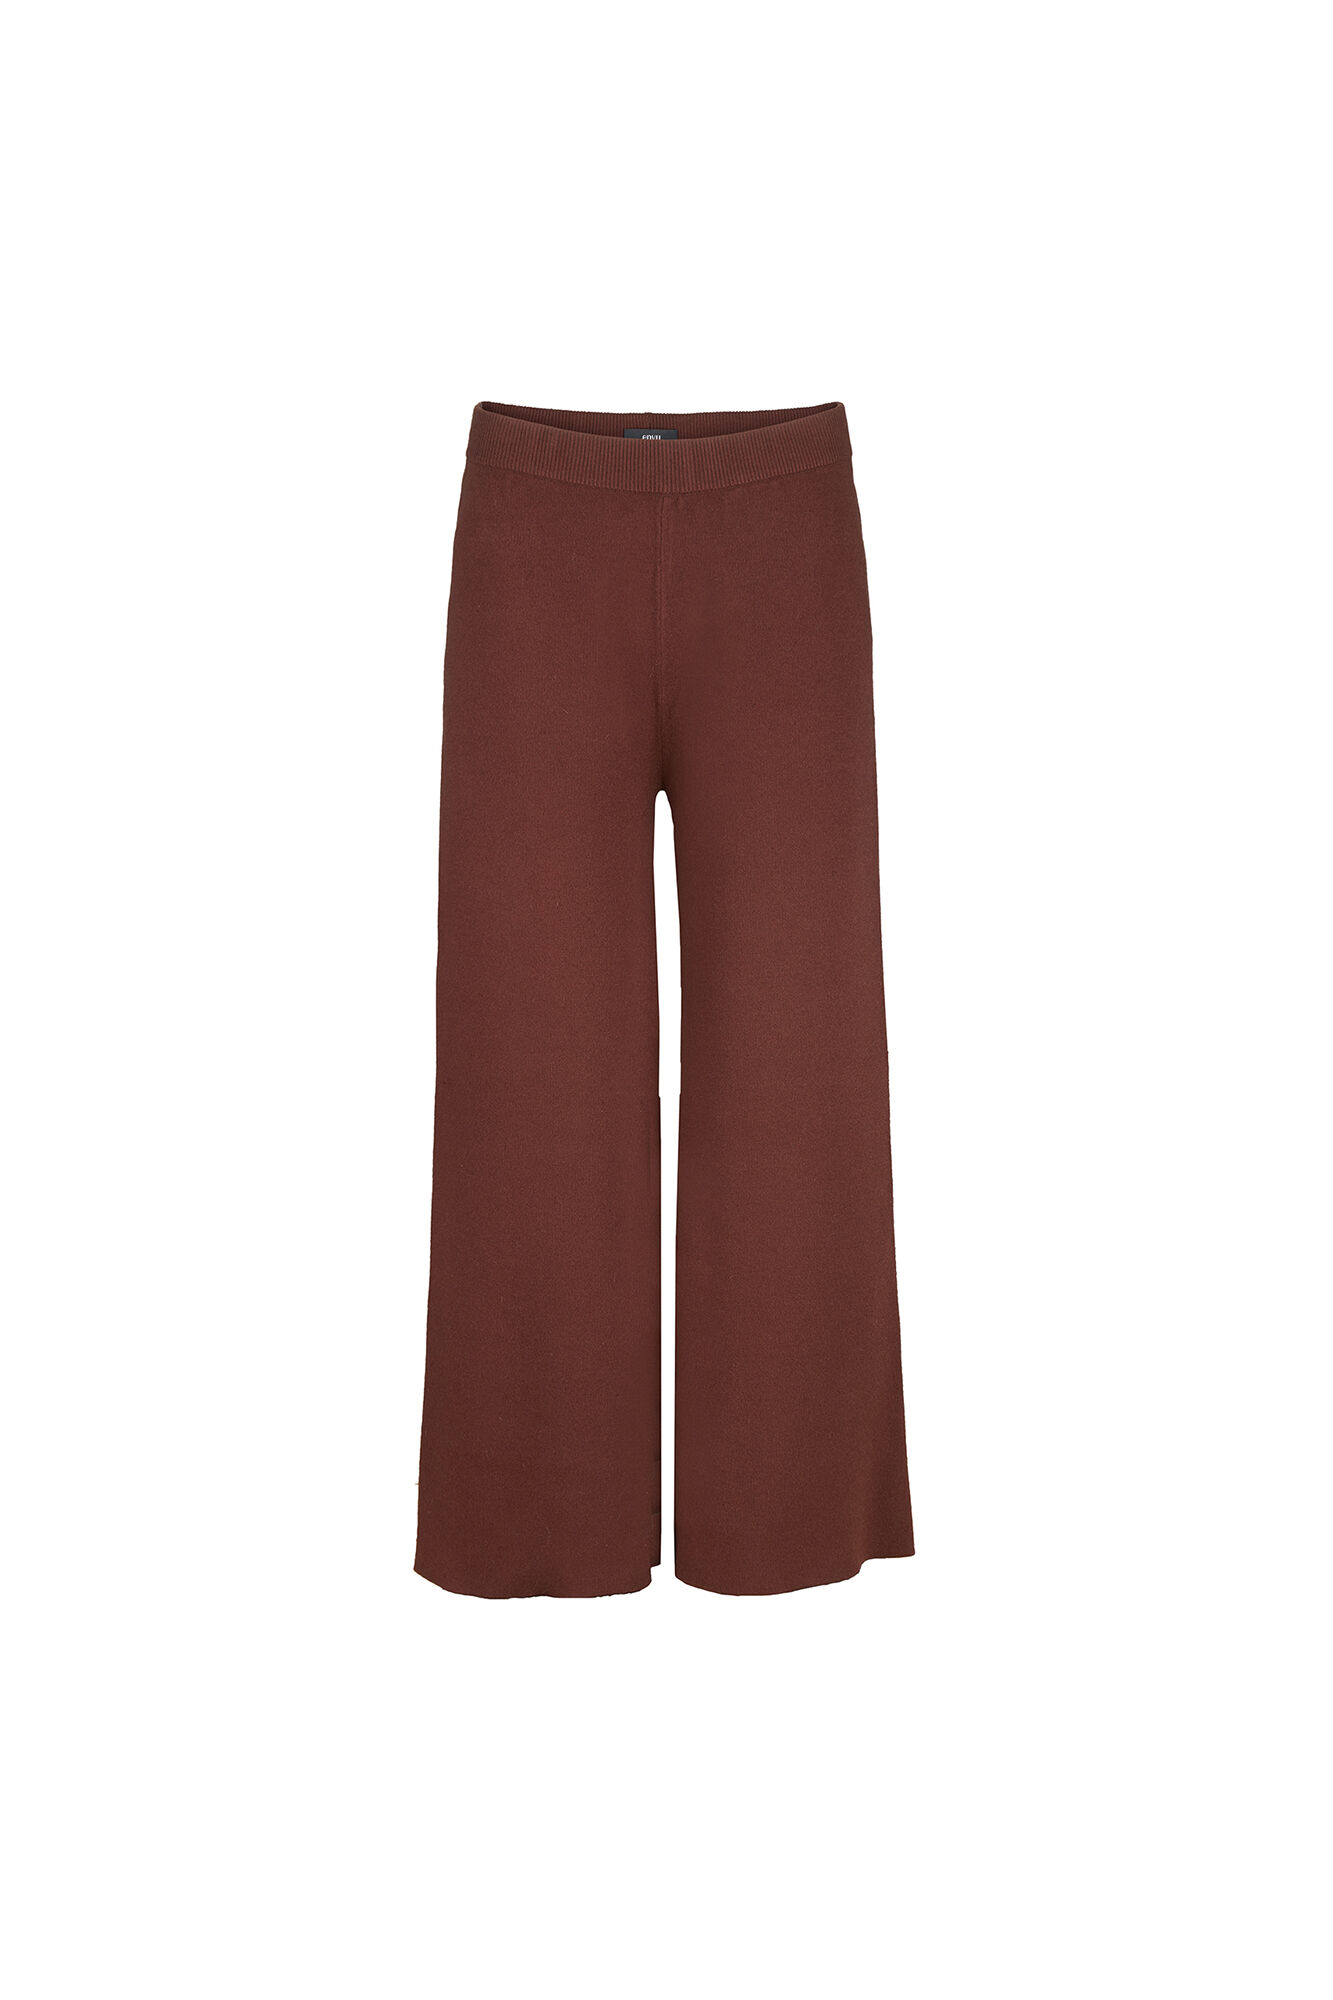 TYRA PANTS 5143, CHESTNUT